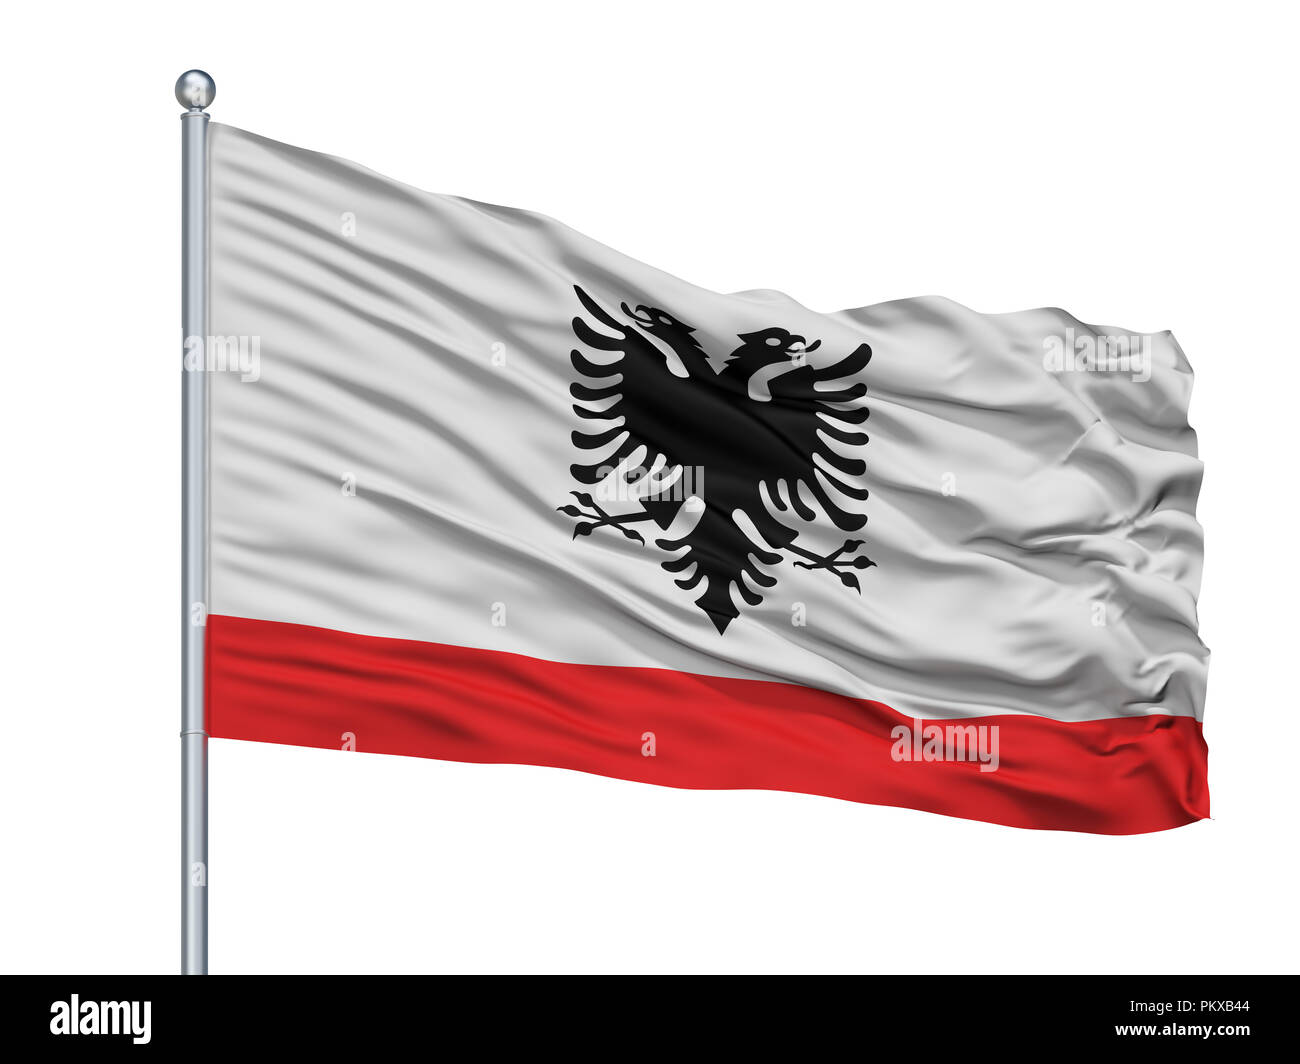 Albania Naval Ensign Flag On Flagpole, Isolated On White Background, 3D Rendering - Stock Image